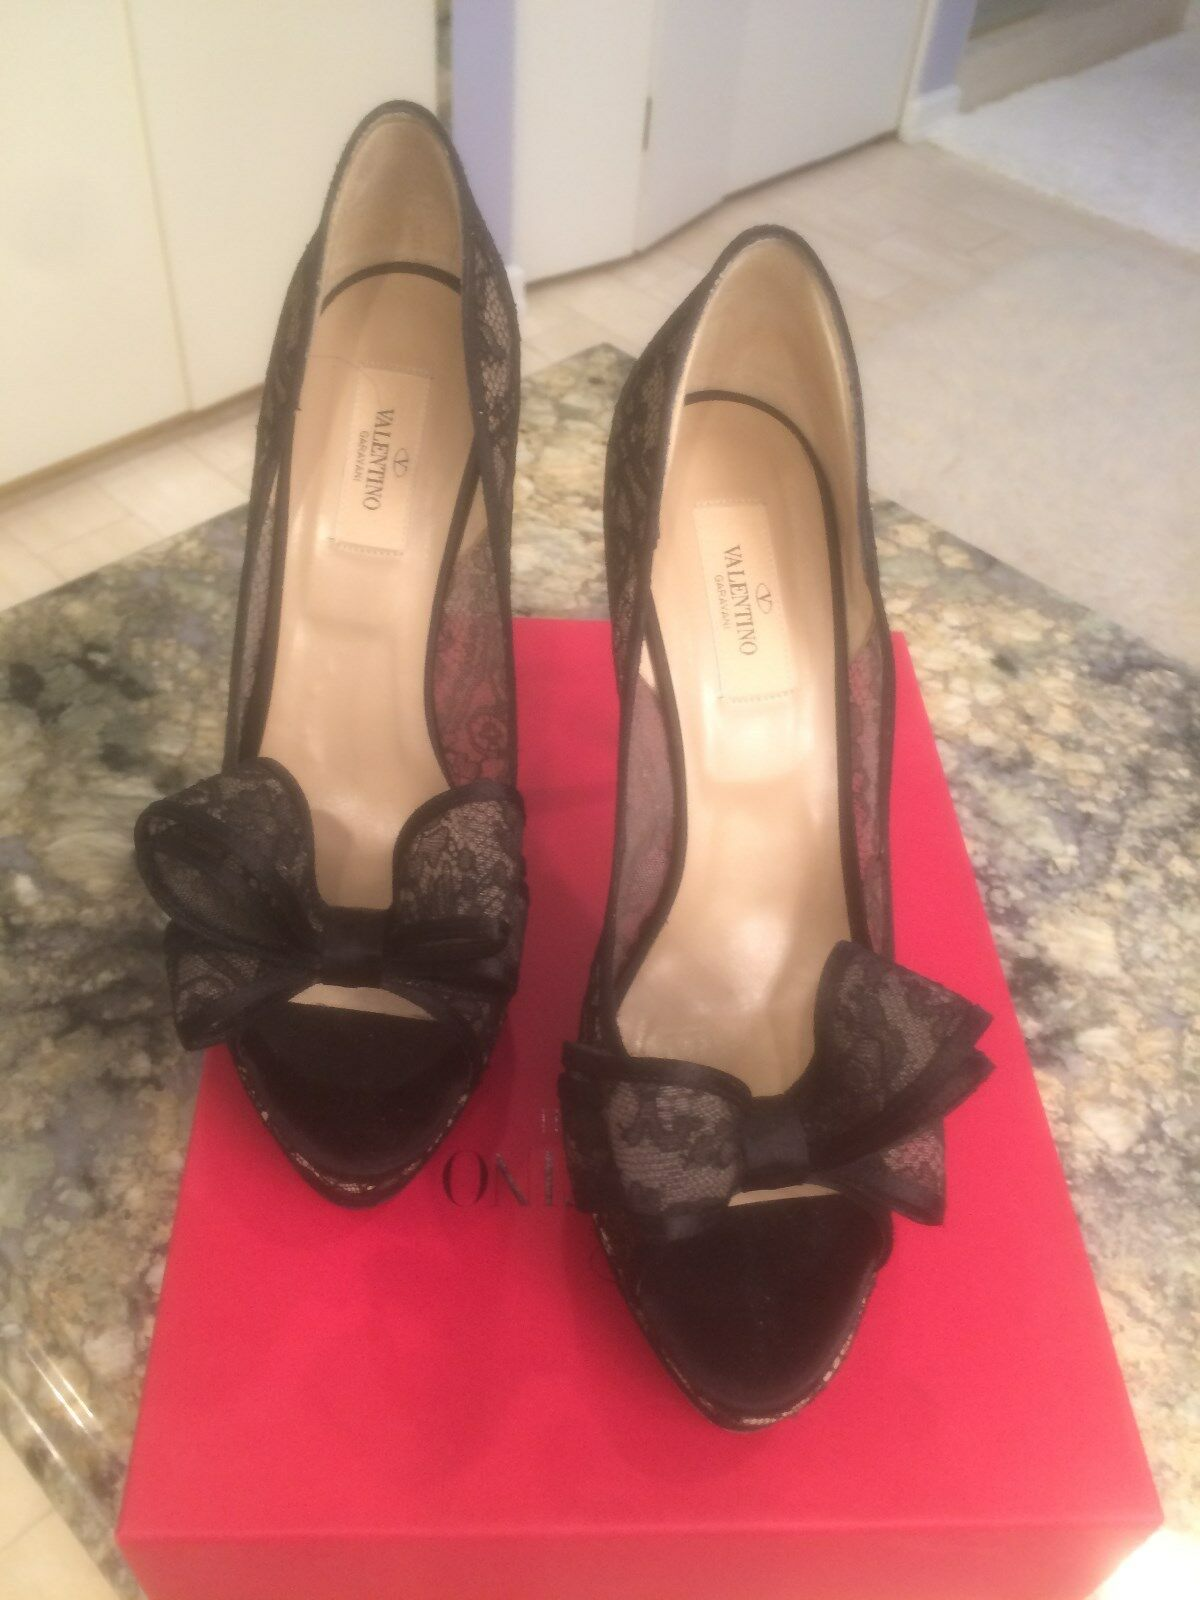 Auth. Valentino Couture Black Lace Open Toe Bow Platform Shoes $885 SZ 10B 40